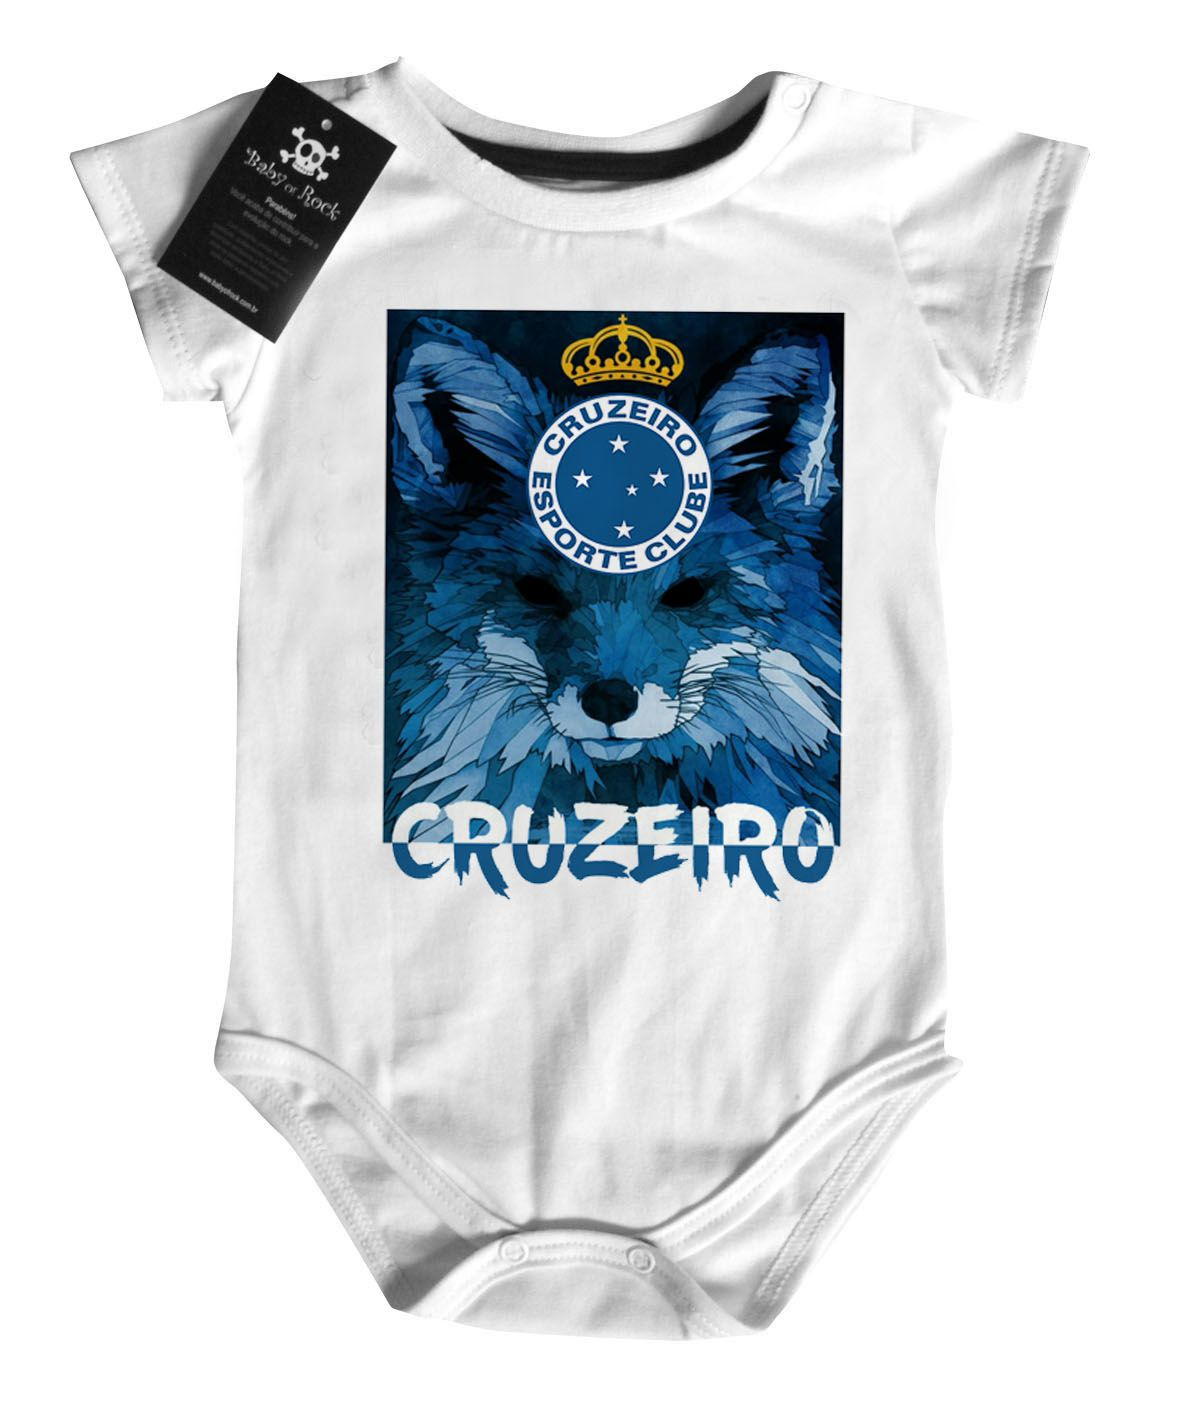 Body Bebe de Cruzeiro Time- Futebol - White - BABY MONSTER - c4489bb7fbe